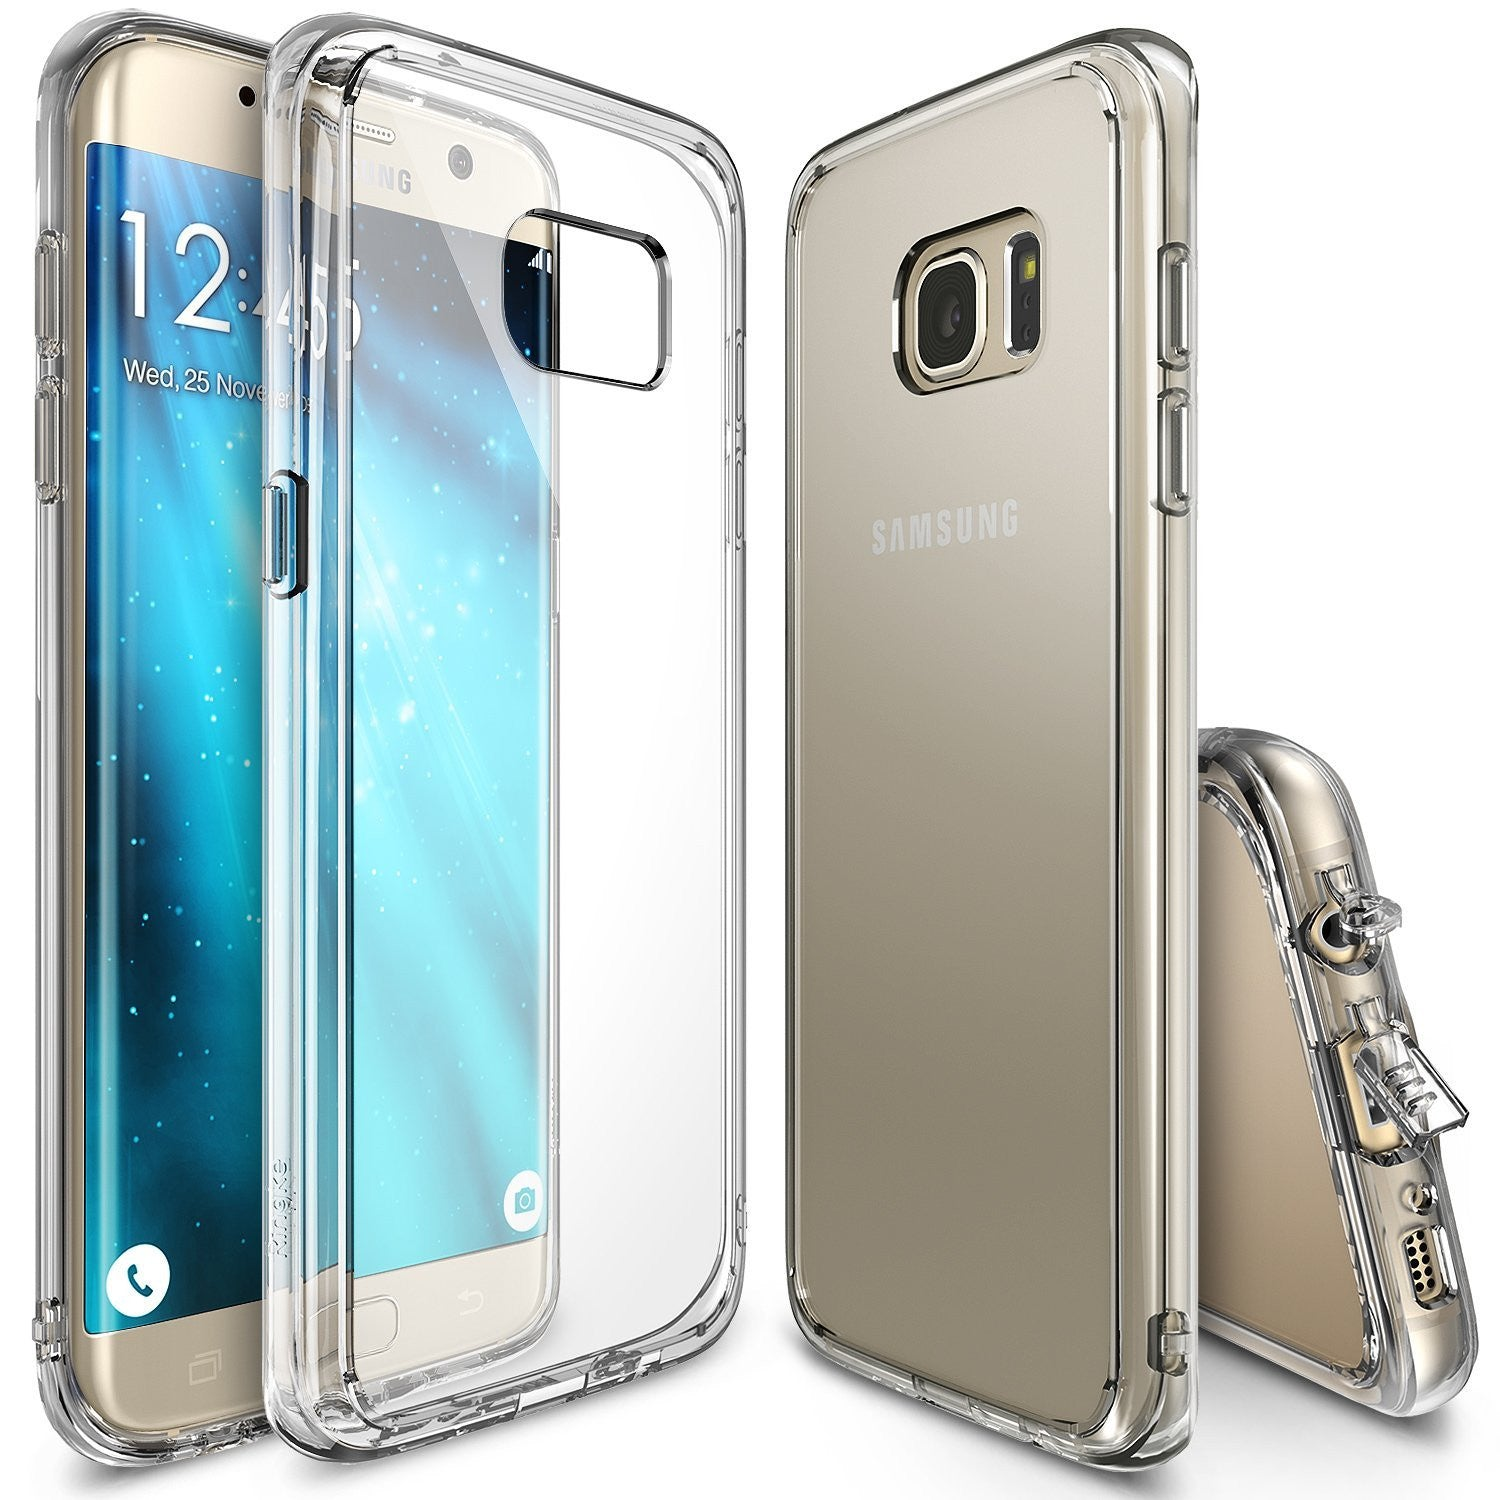 ringke fusion clear transparent back tpu frame cover case for galaxy s7 edge clear